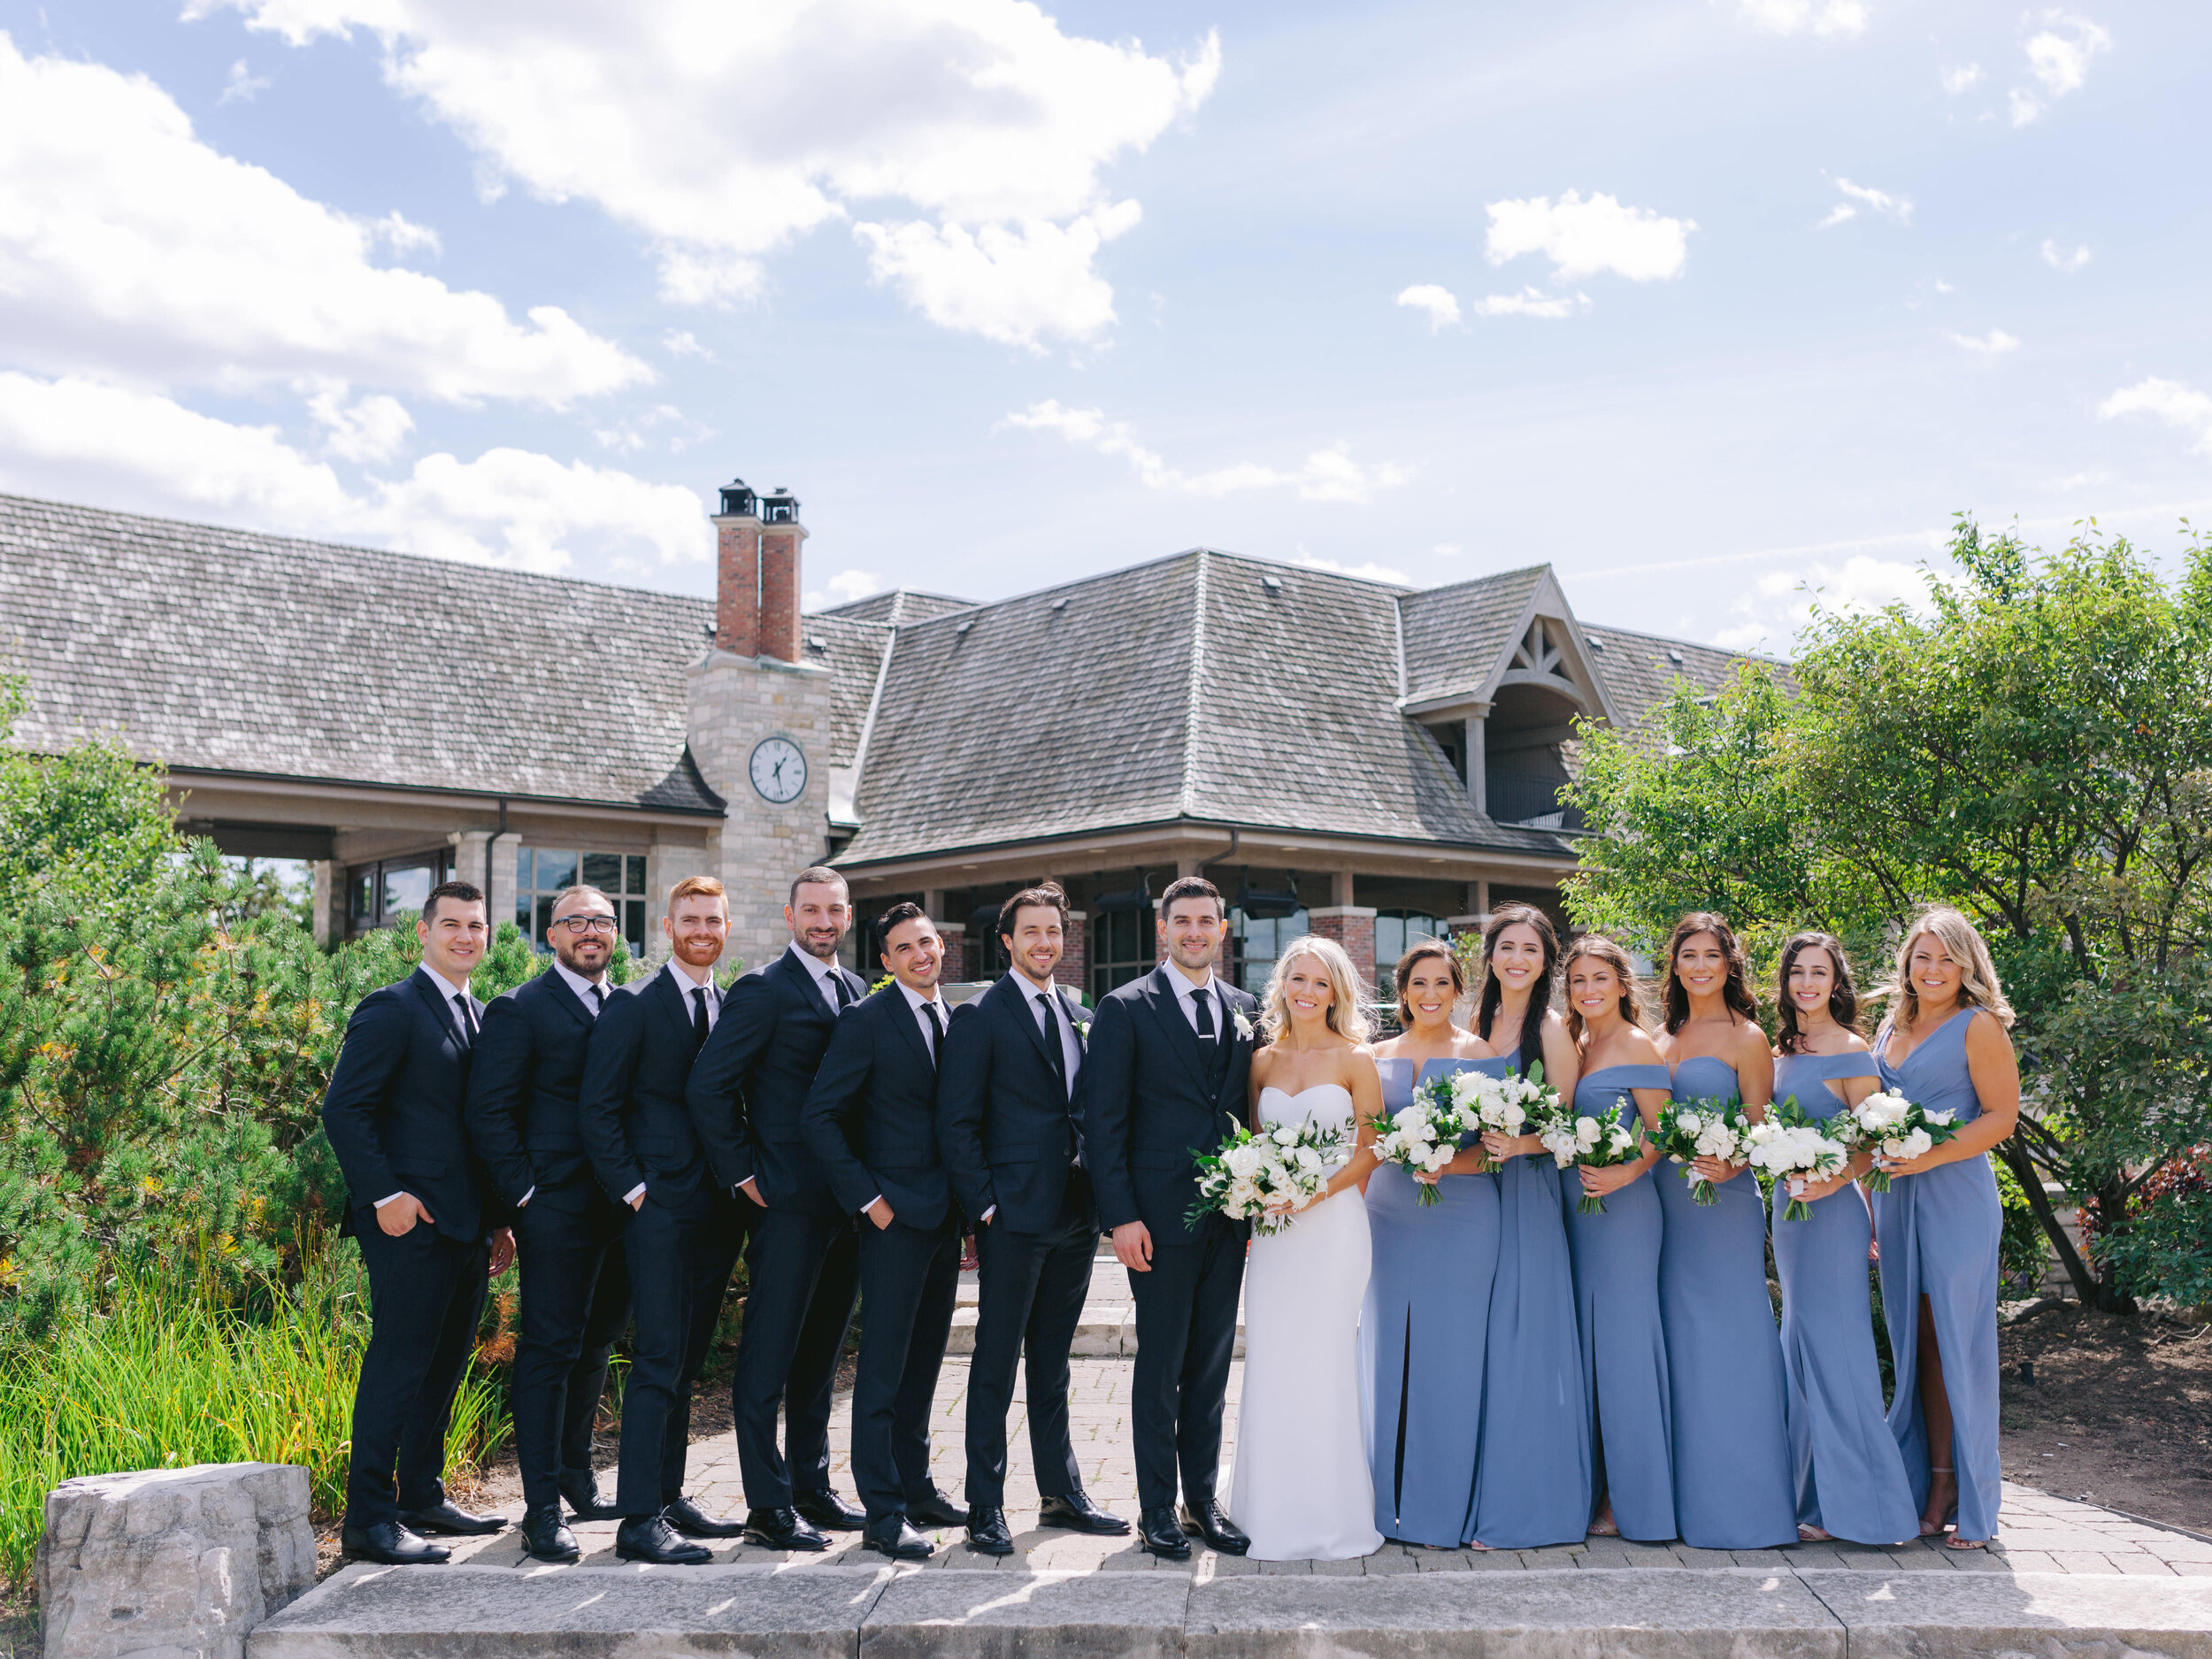 First Look_Bridal Party Portraits (90 of 234).JPG